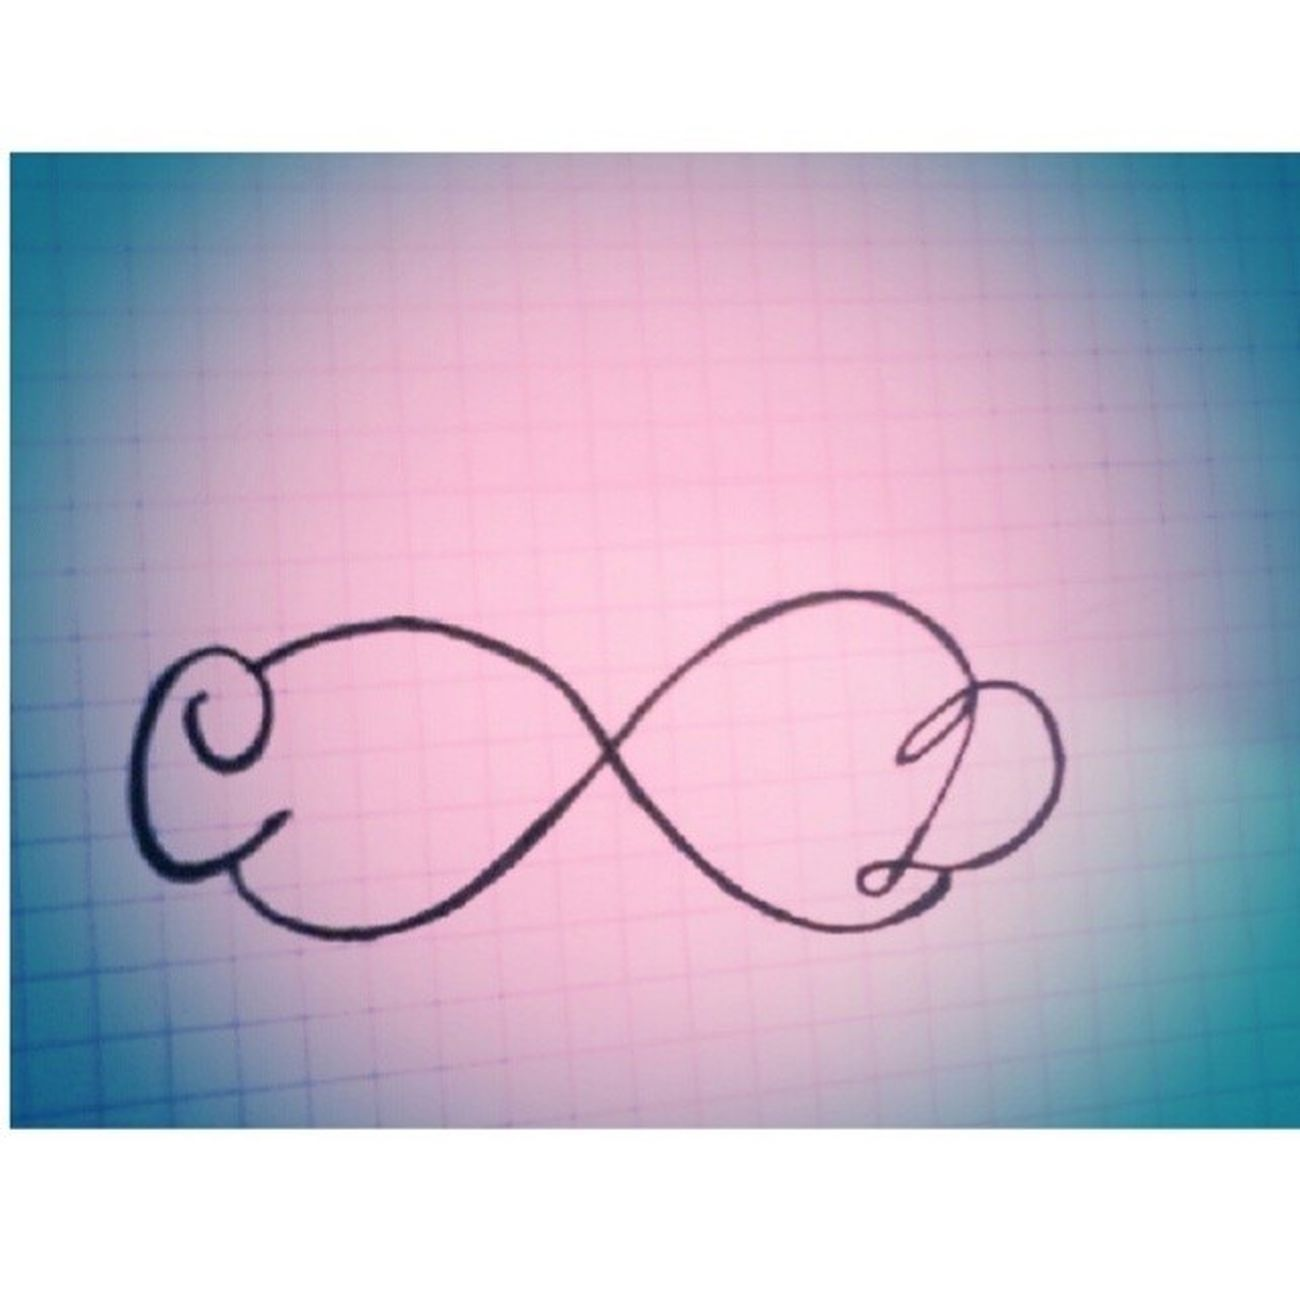 Noi siamo infinito CeD♥ Infinity We Love WeAreInfinity justustwo C&D instalove swag handmade draw letter colours promise forever boyfriend bf lovehim life tagforlikes t4l instaphoto supreme couples lovelikeours